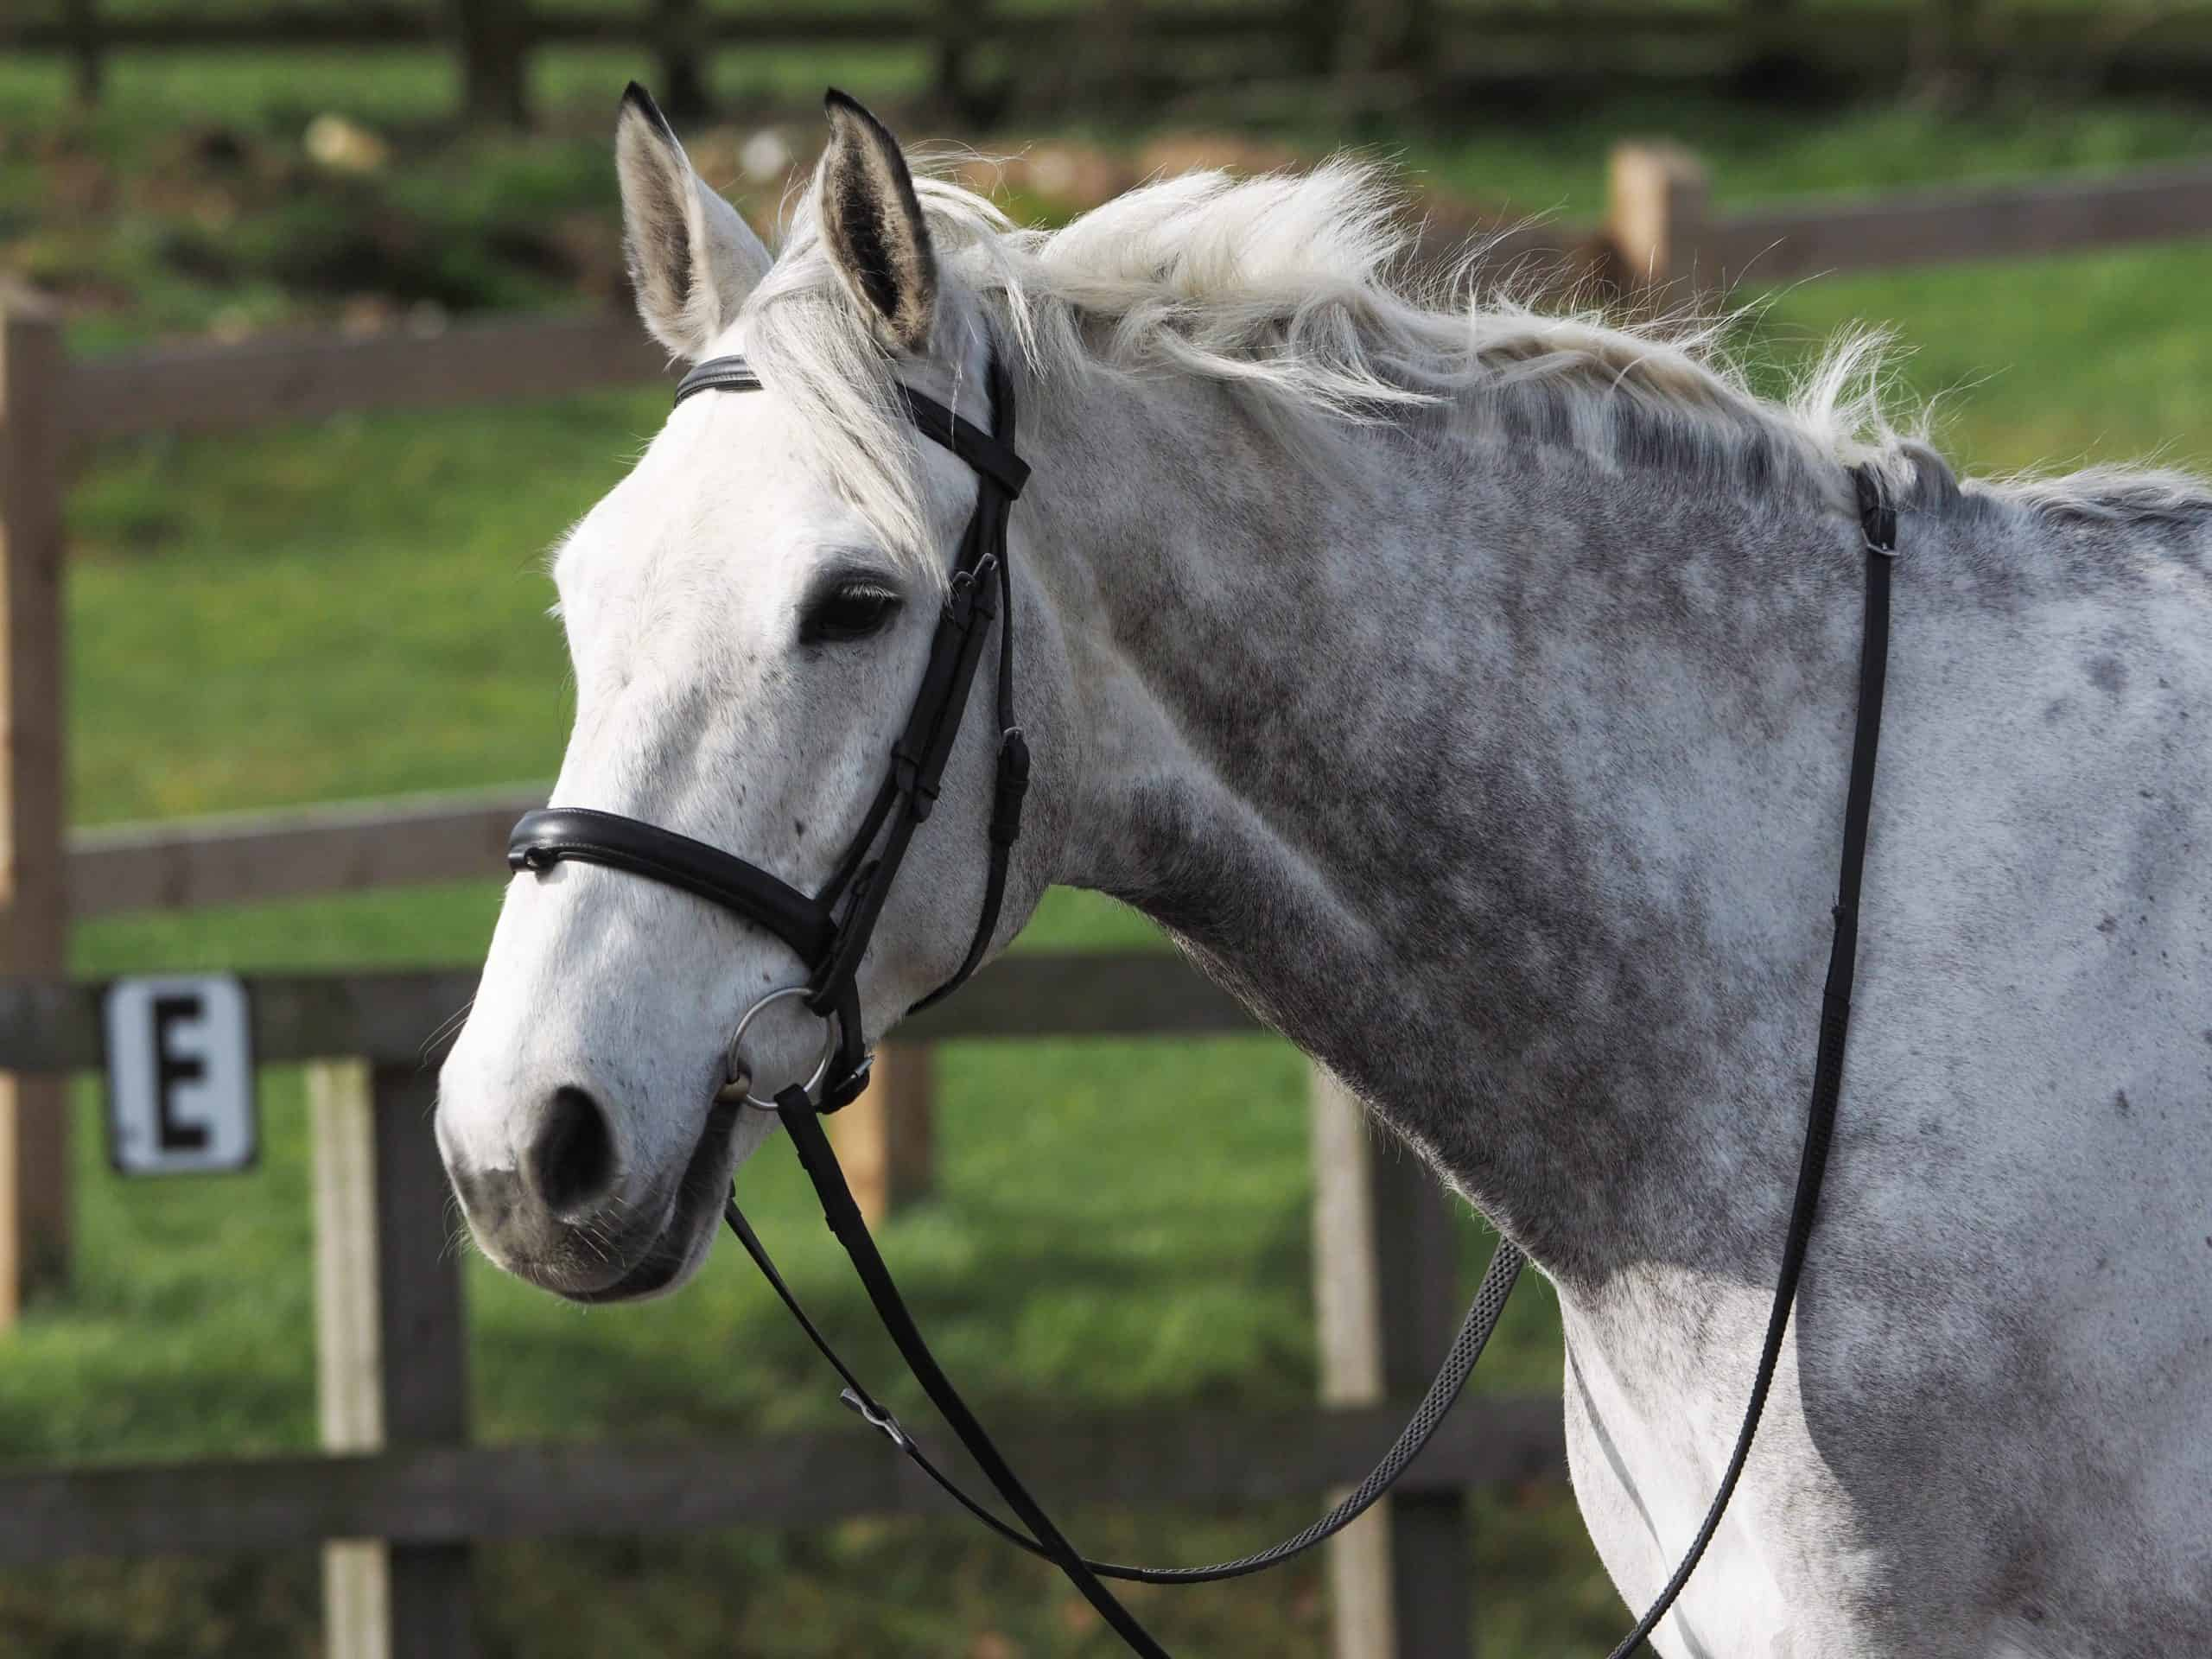 A head shot of a grey horse in a snaffle bridle.